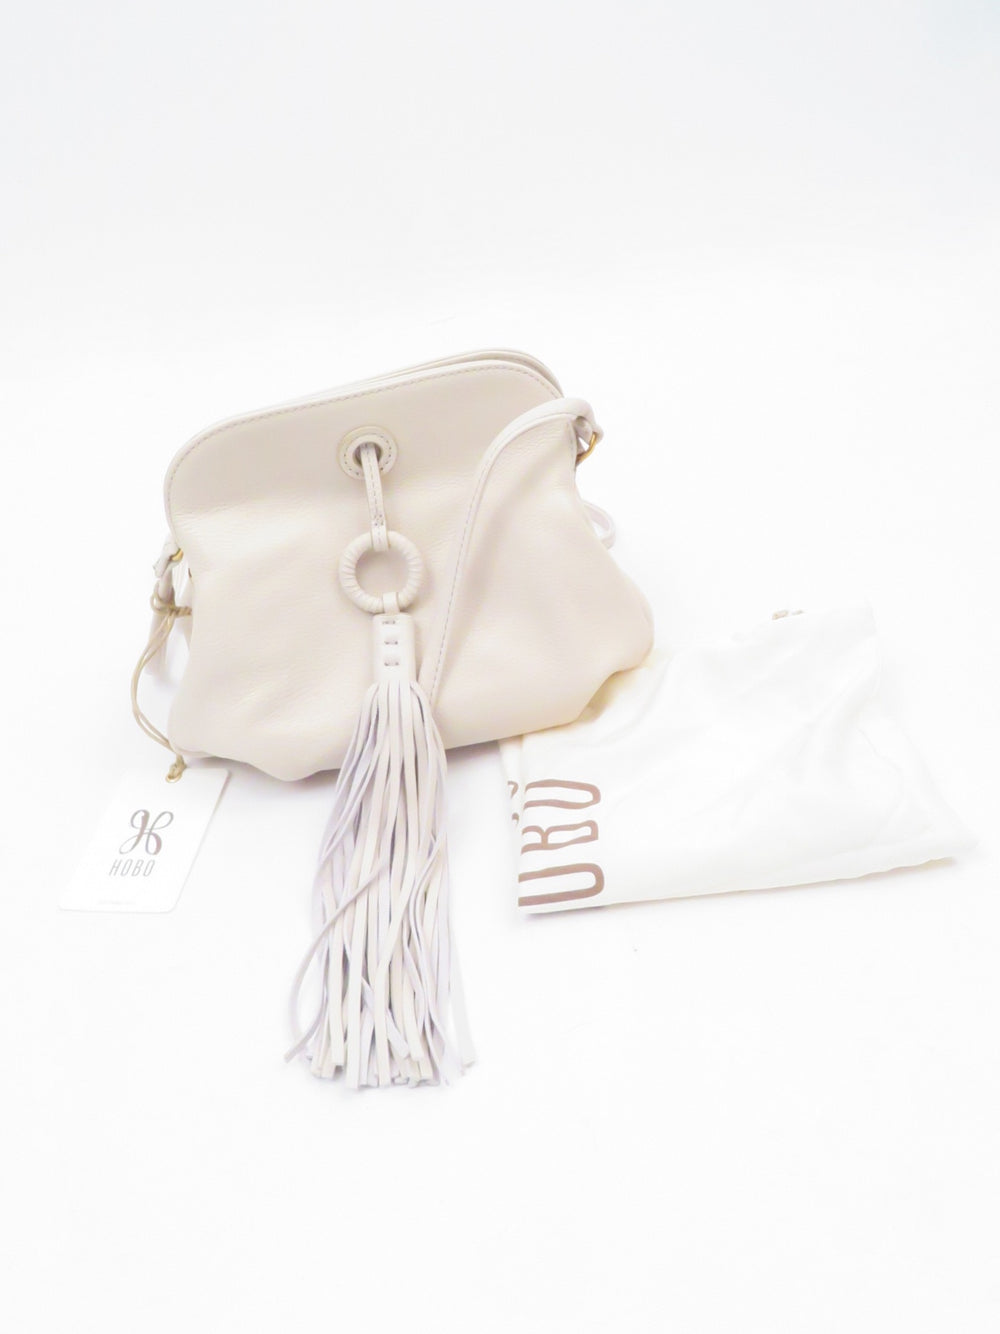 hobo 'birdie' crossbody slouchy leather bag in color 'dew'. features accordion style design and tassel detail. dust bag included.